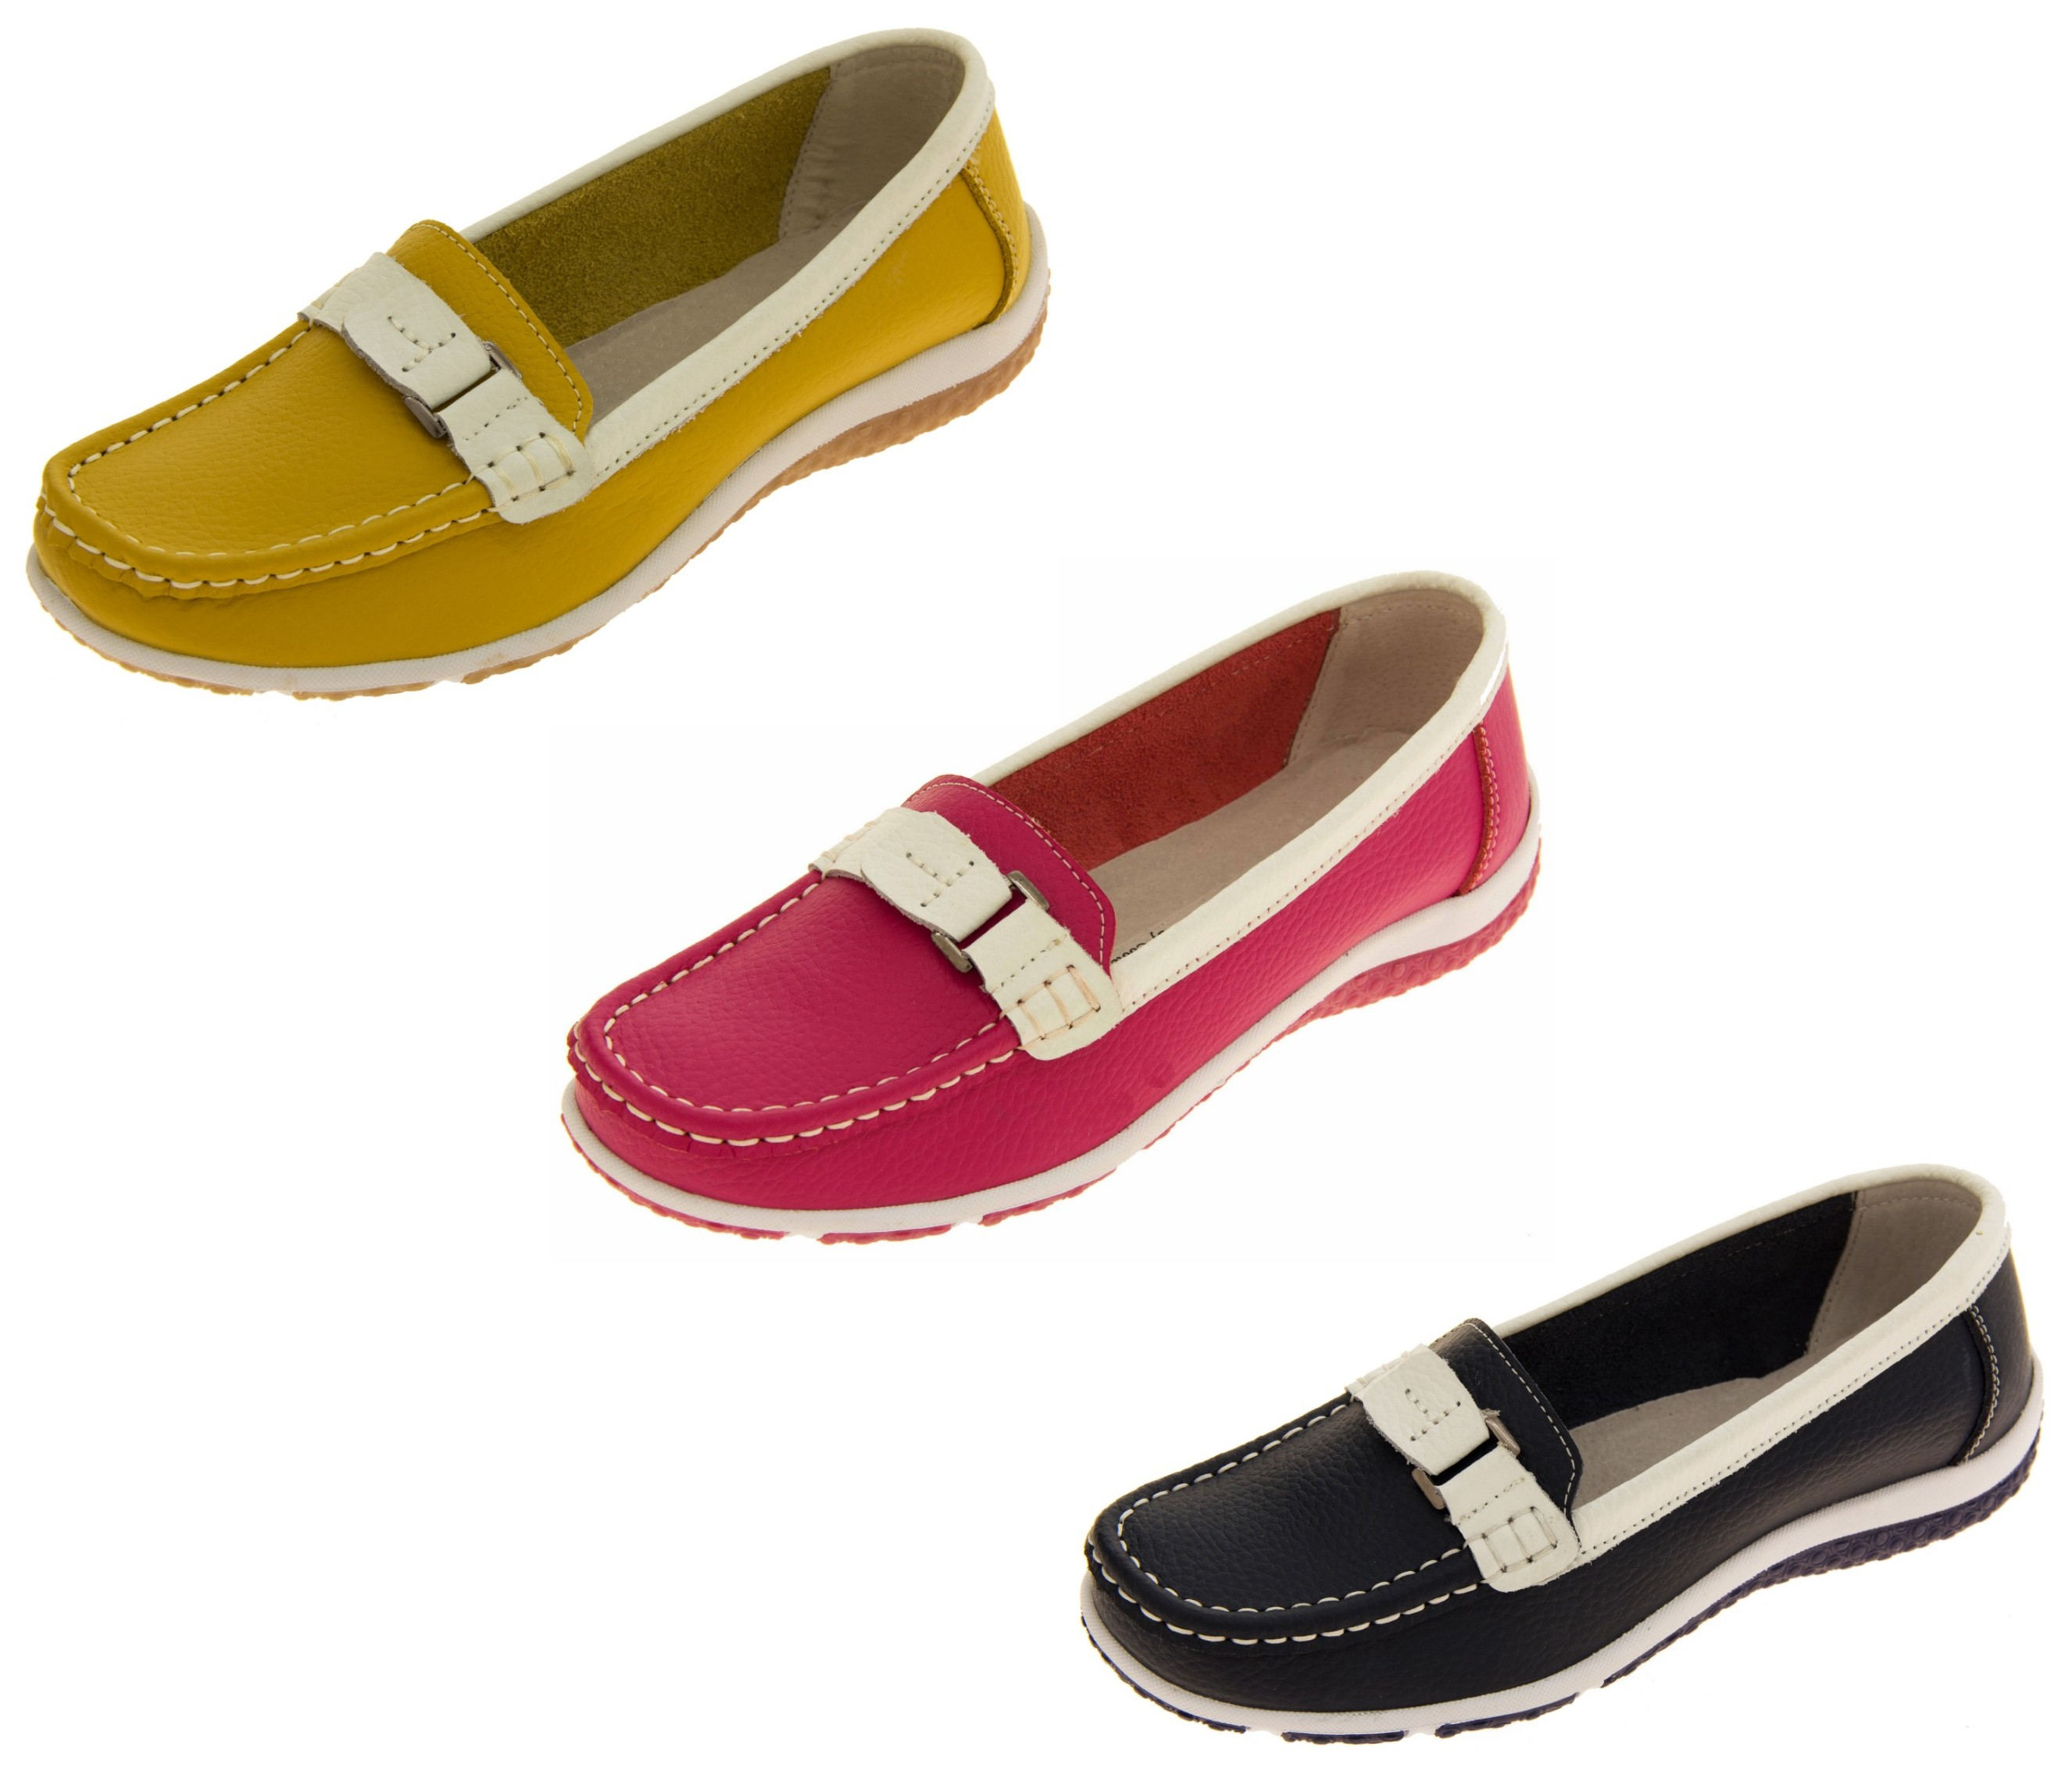 Quality Suede Shoes Brands